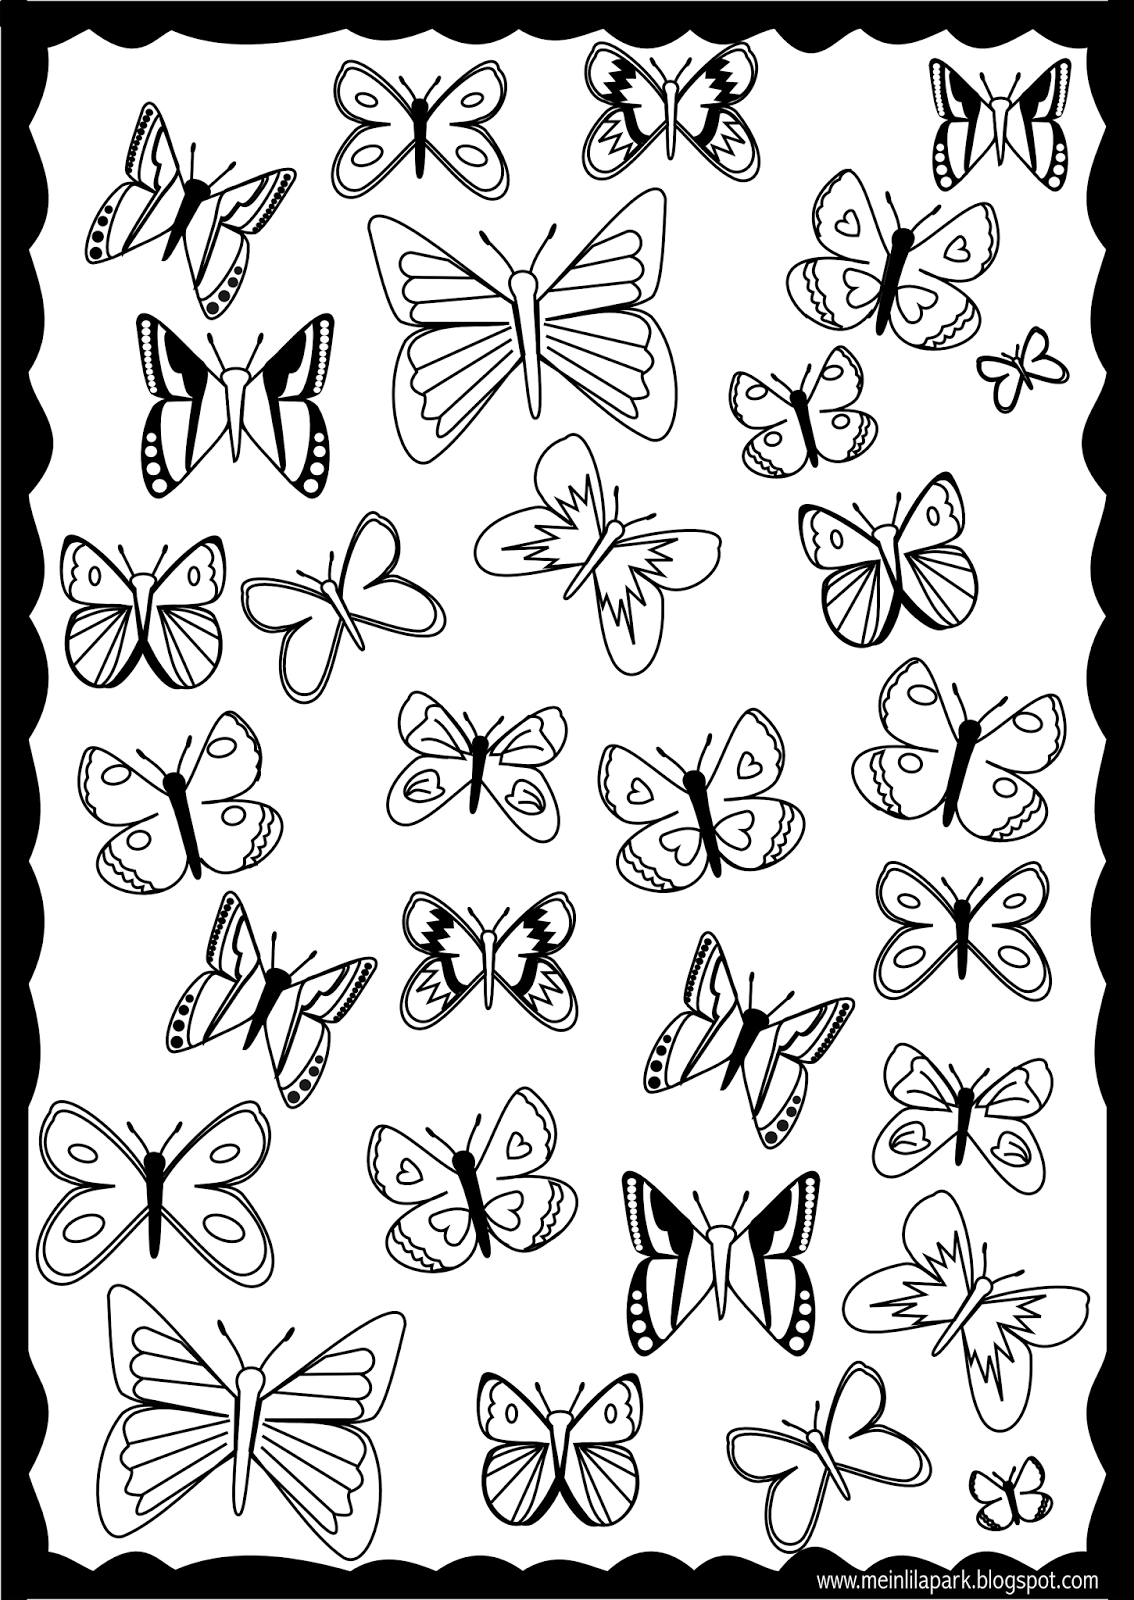 Free Printable Butterfly Coloring Page Ausdruckbare Coloring Pages Printable Free